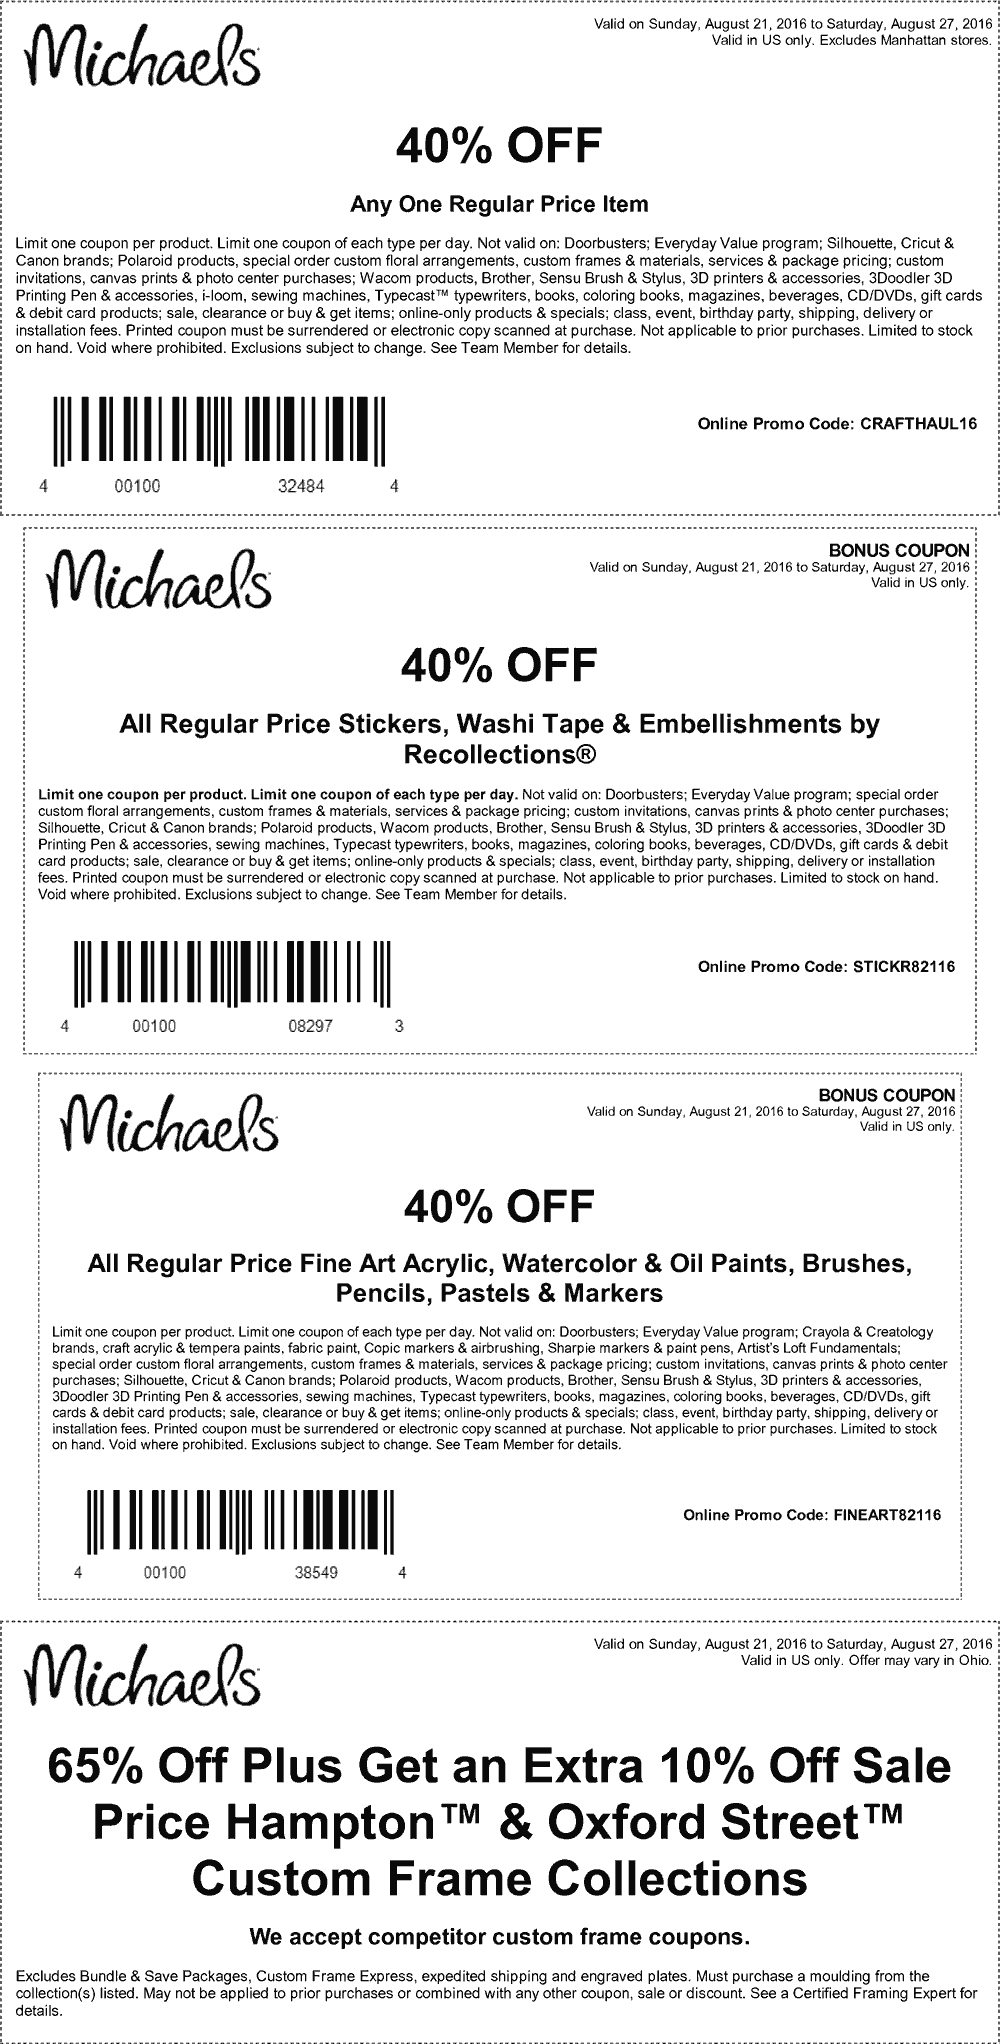 Michaels Coupon June 2017 40% off a single item at Michaels, or online via promo code CRAFTHAUL16